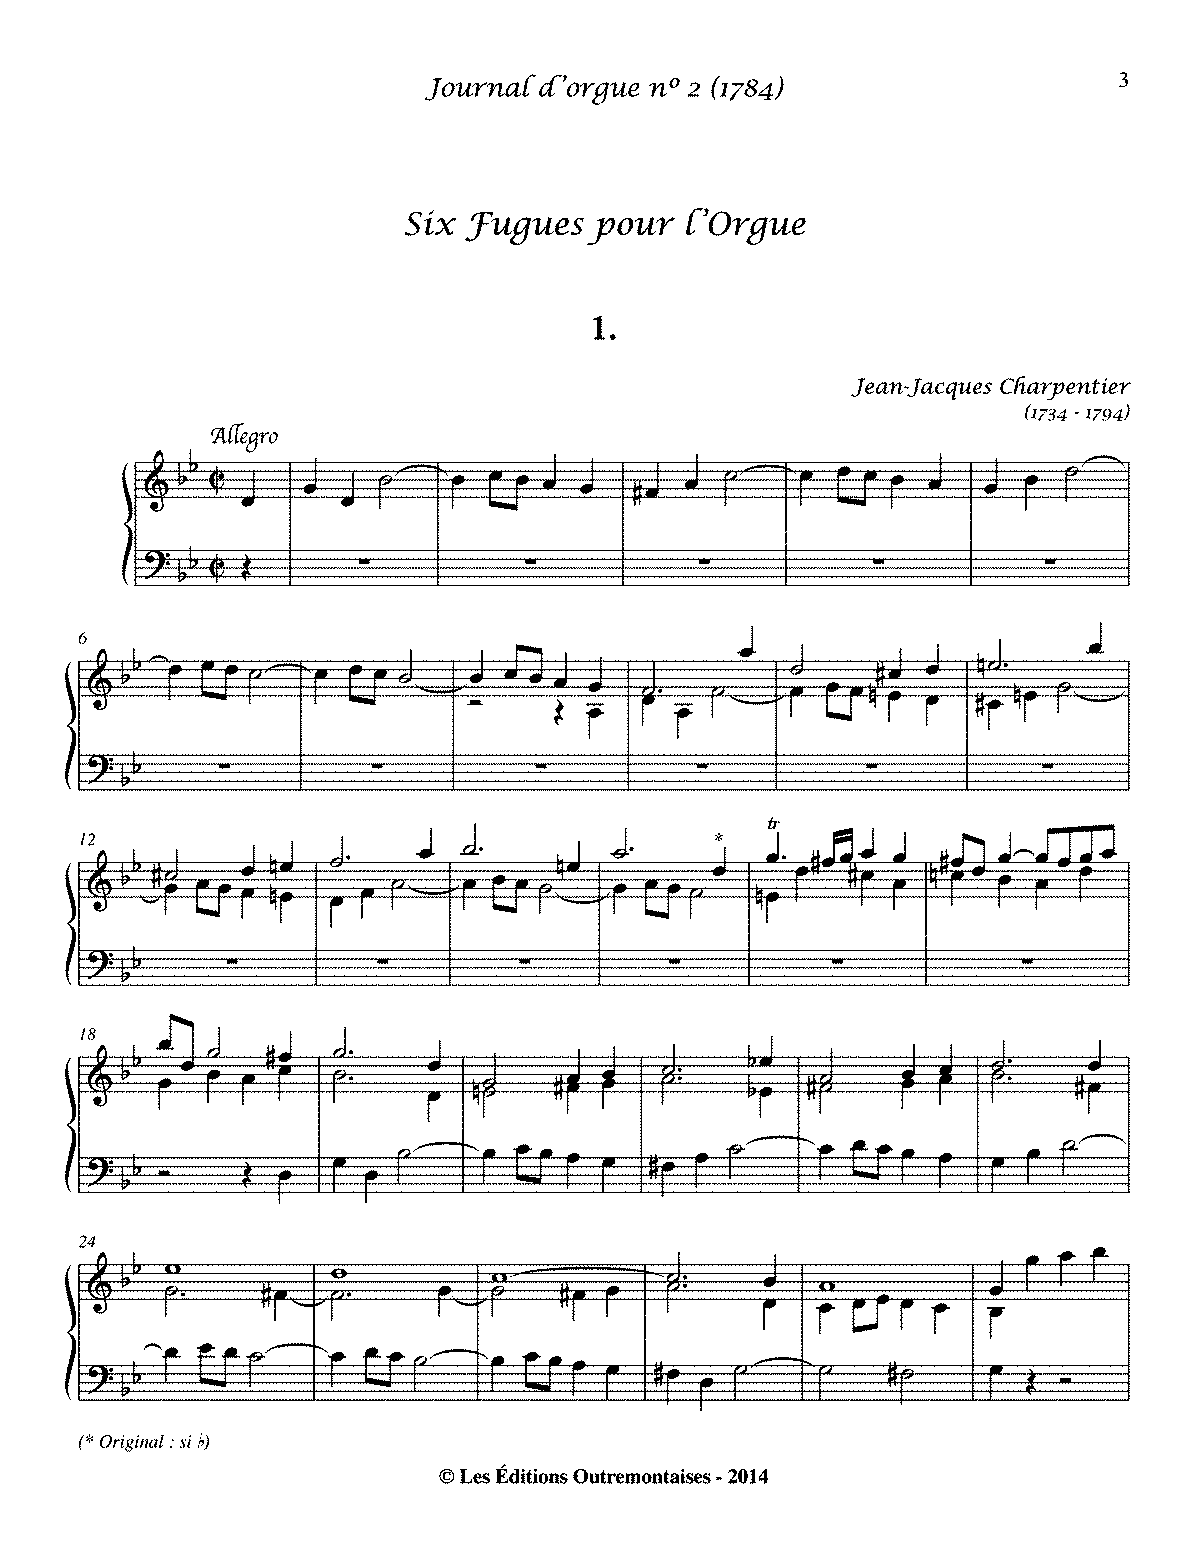 PMLP522400-Beauv-Charpentier J2 Fugue 1.pdf